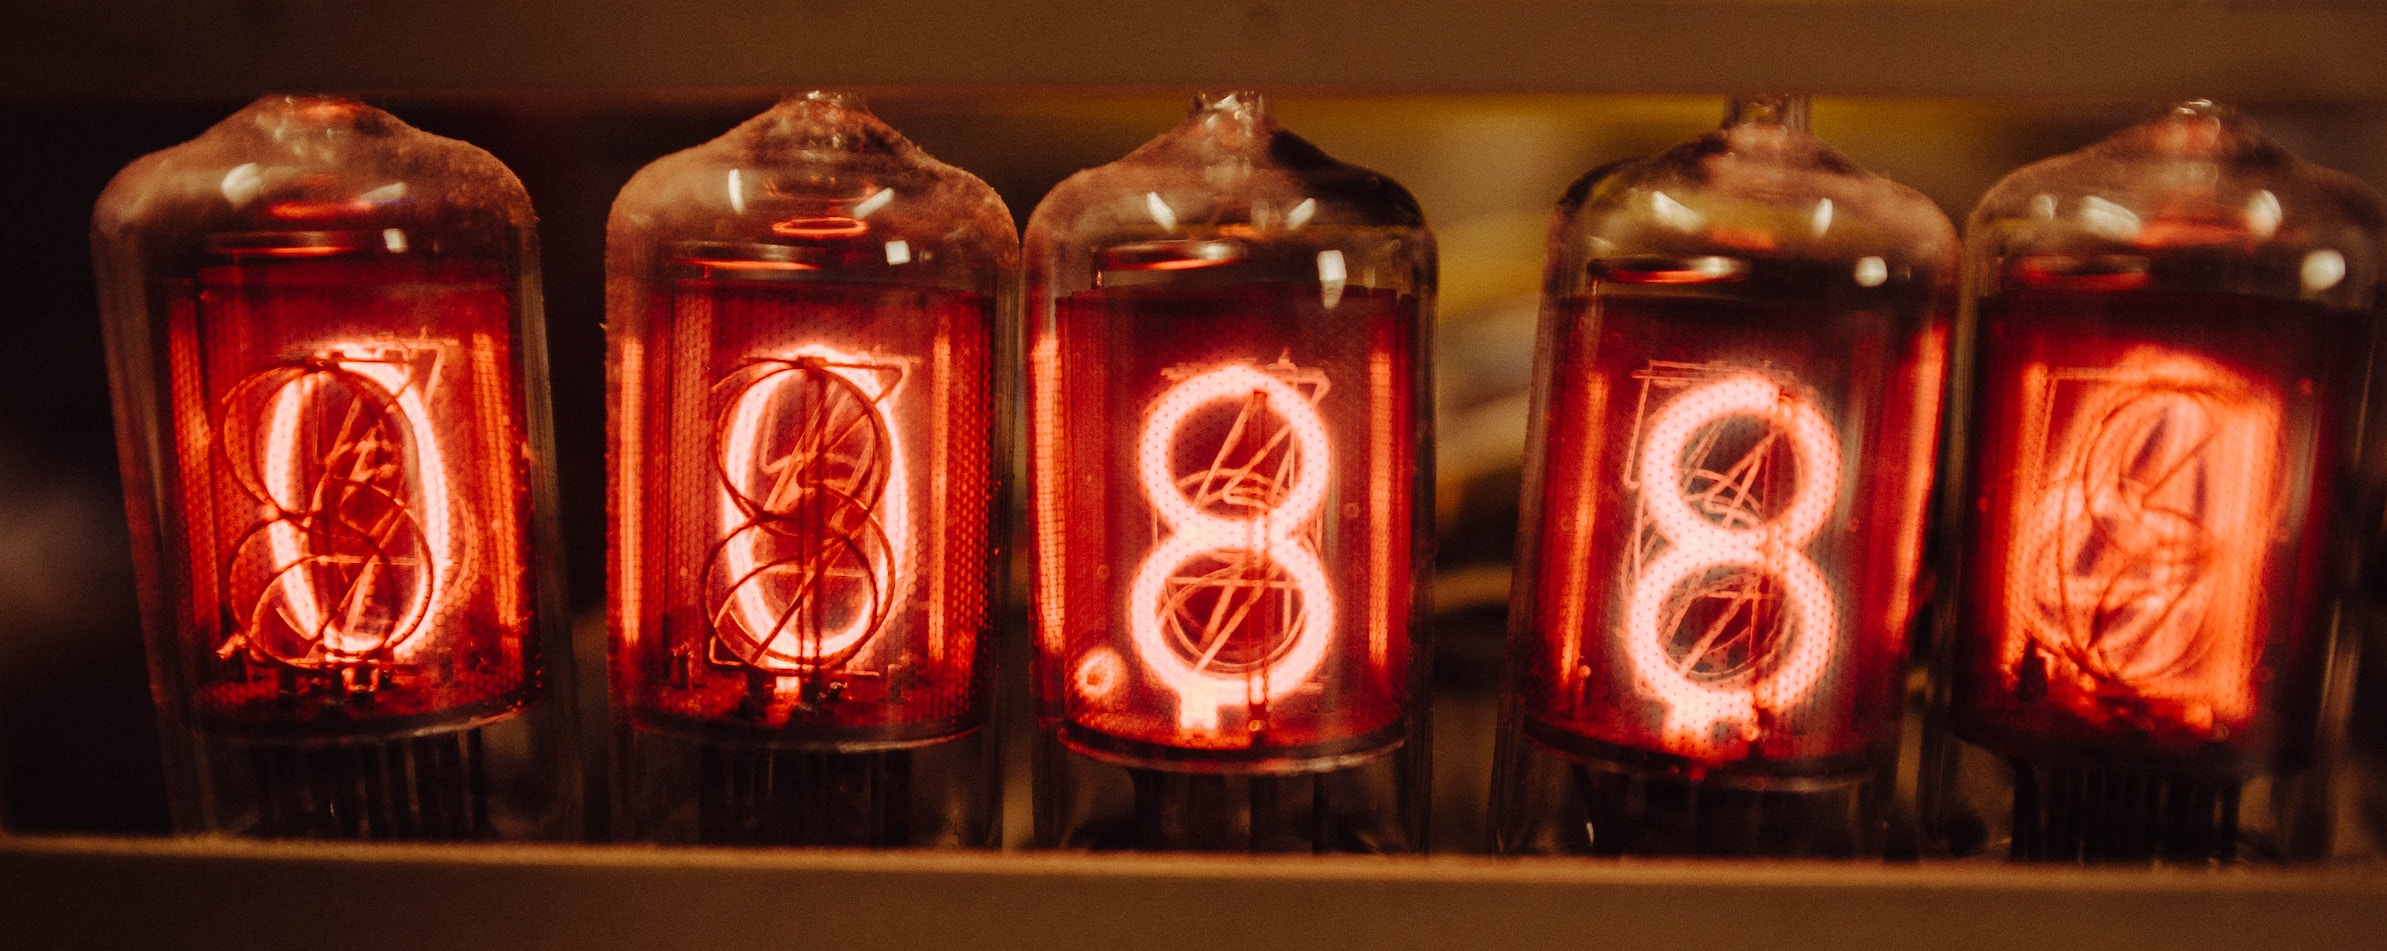 A team of lamps with numbers